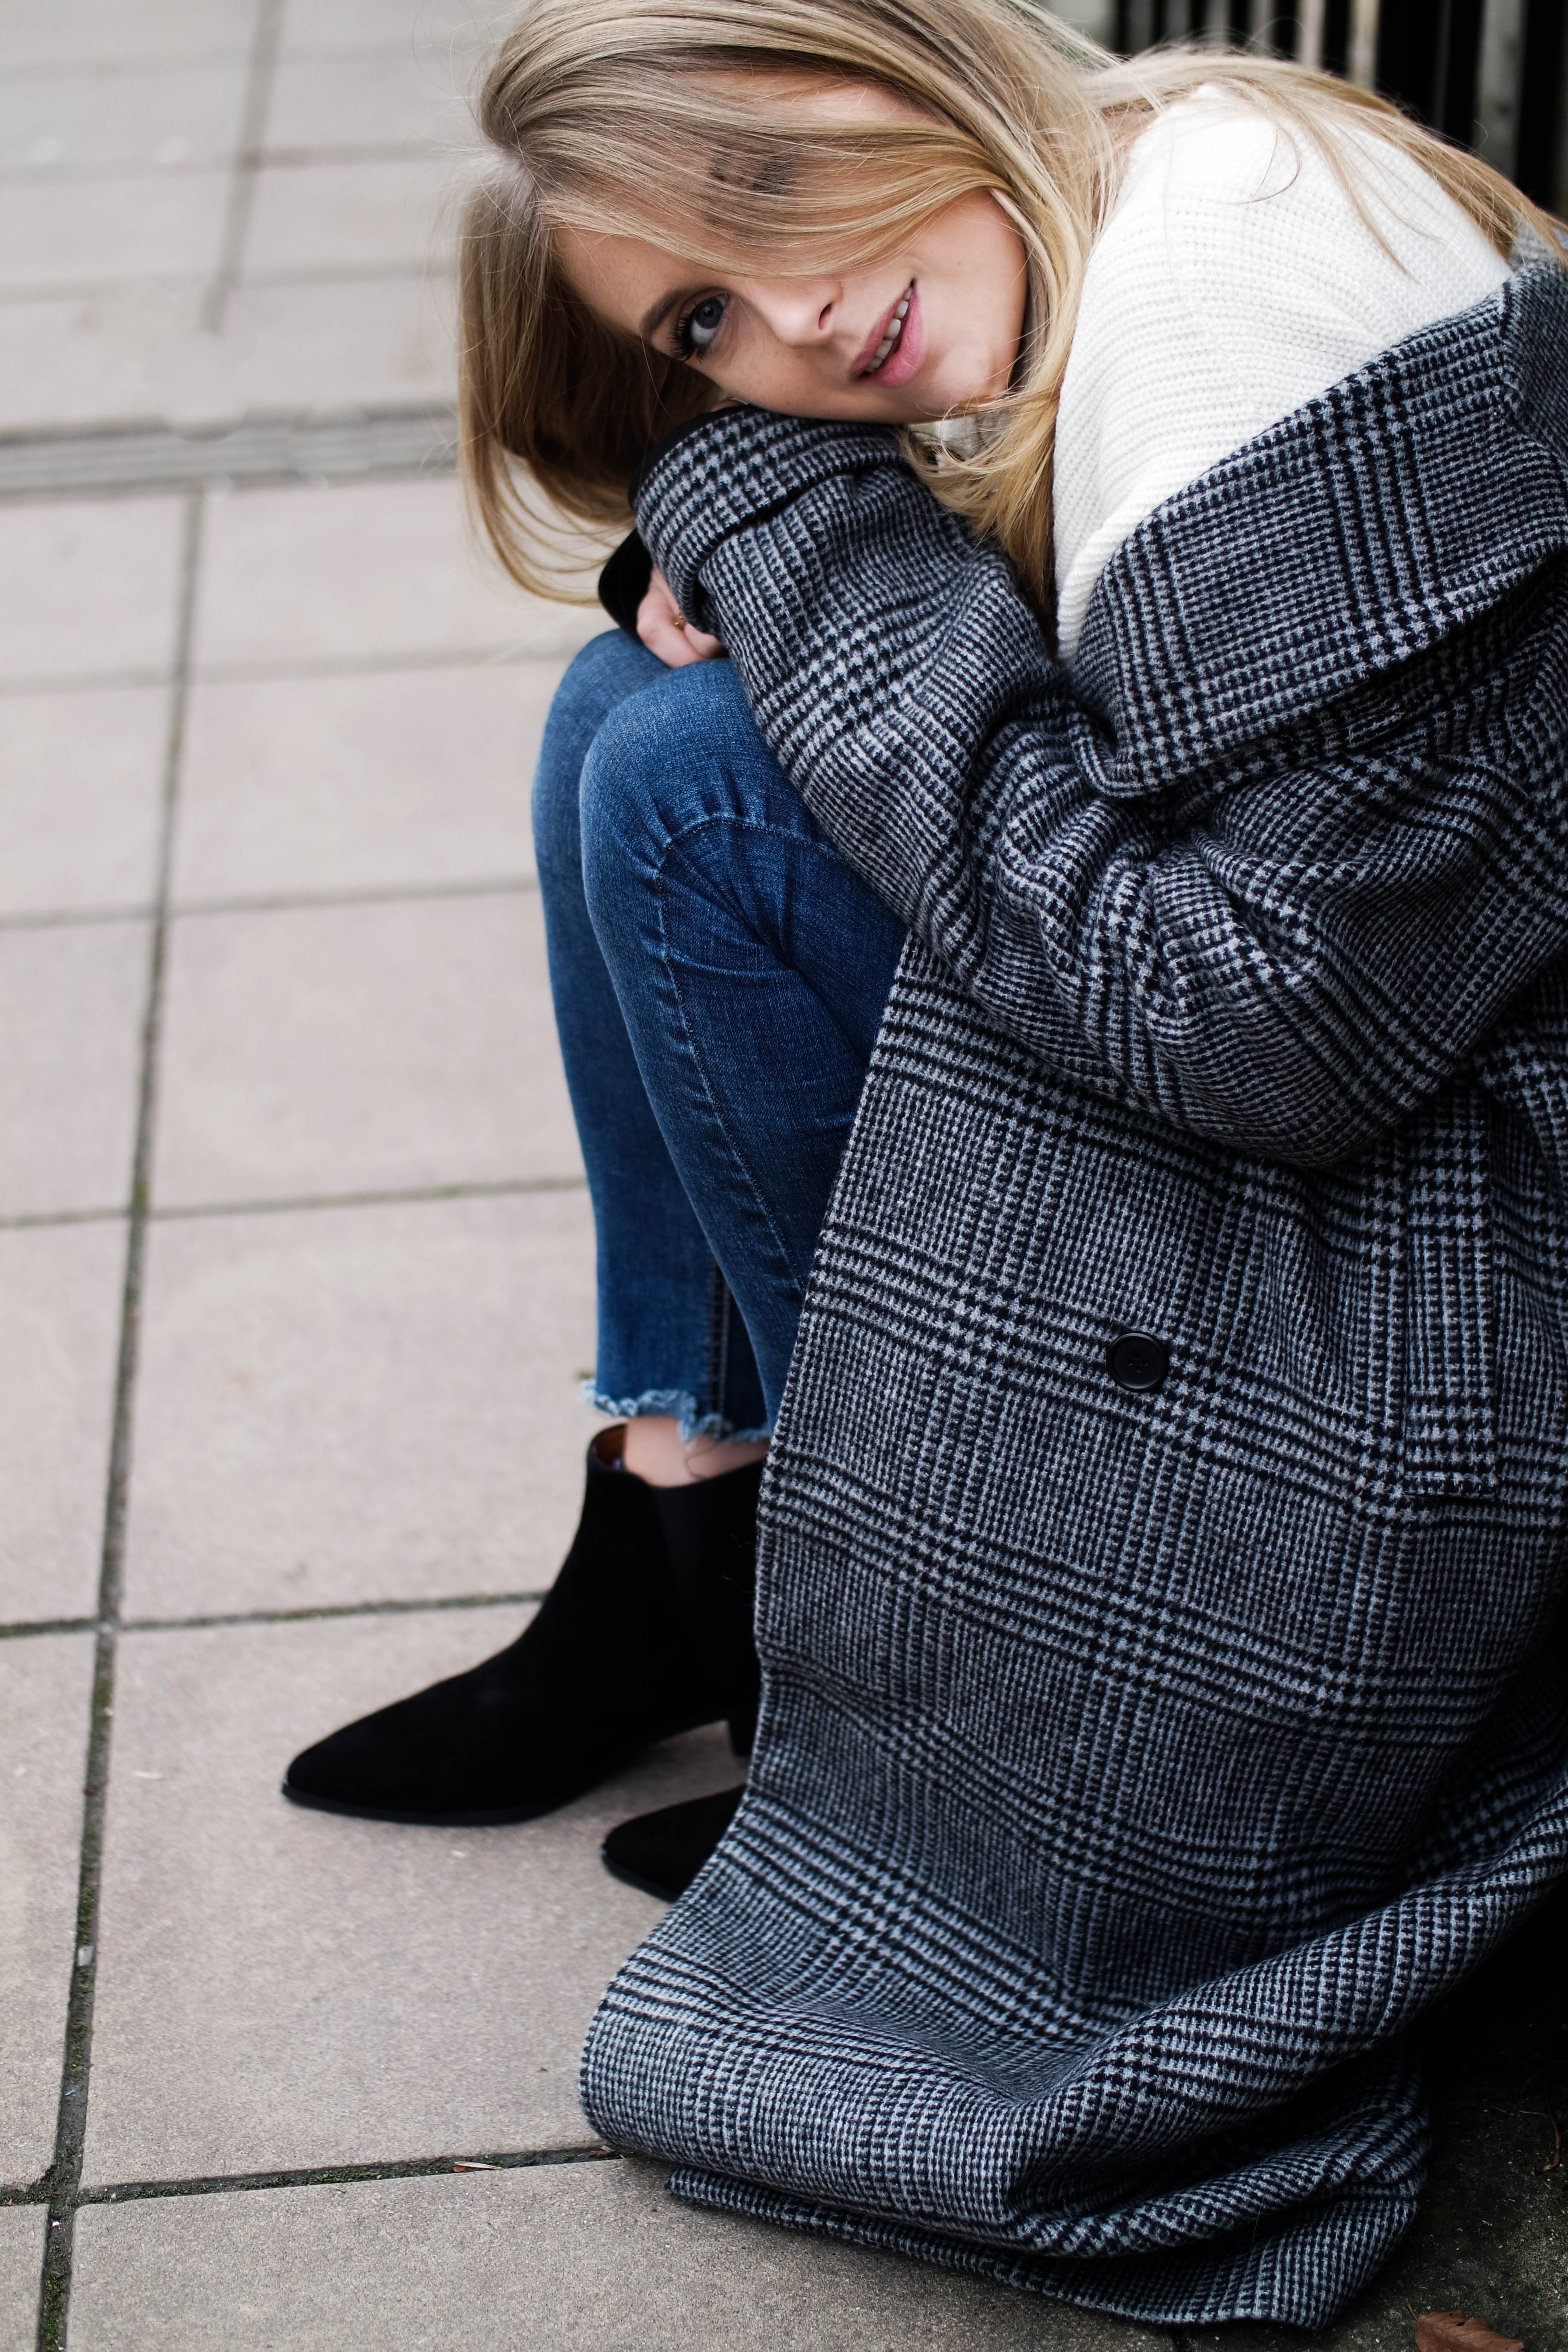 How Important Is Personal Style